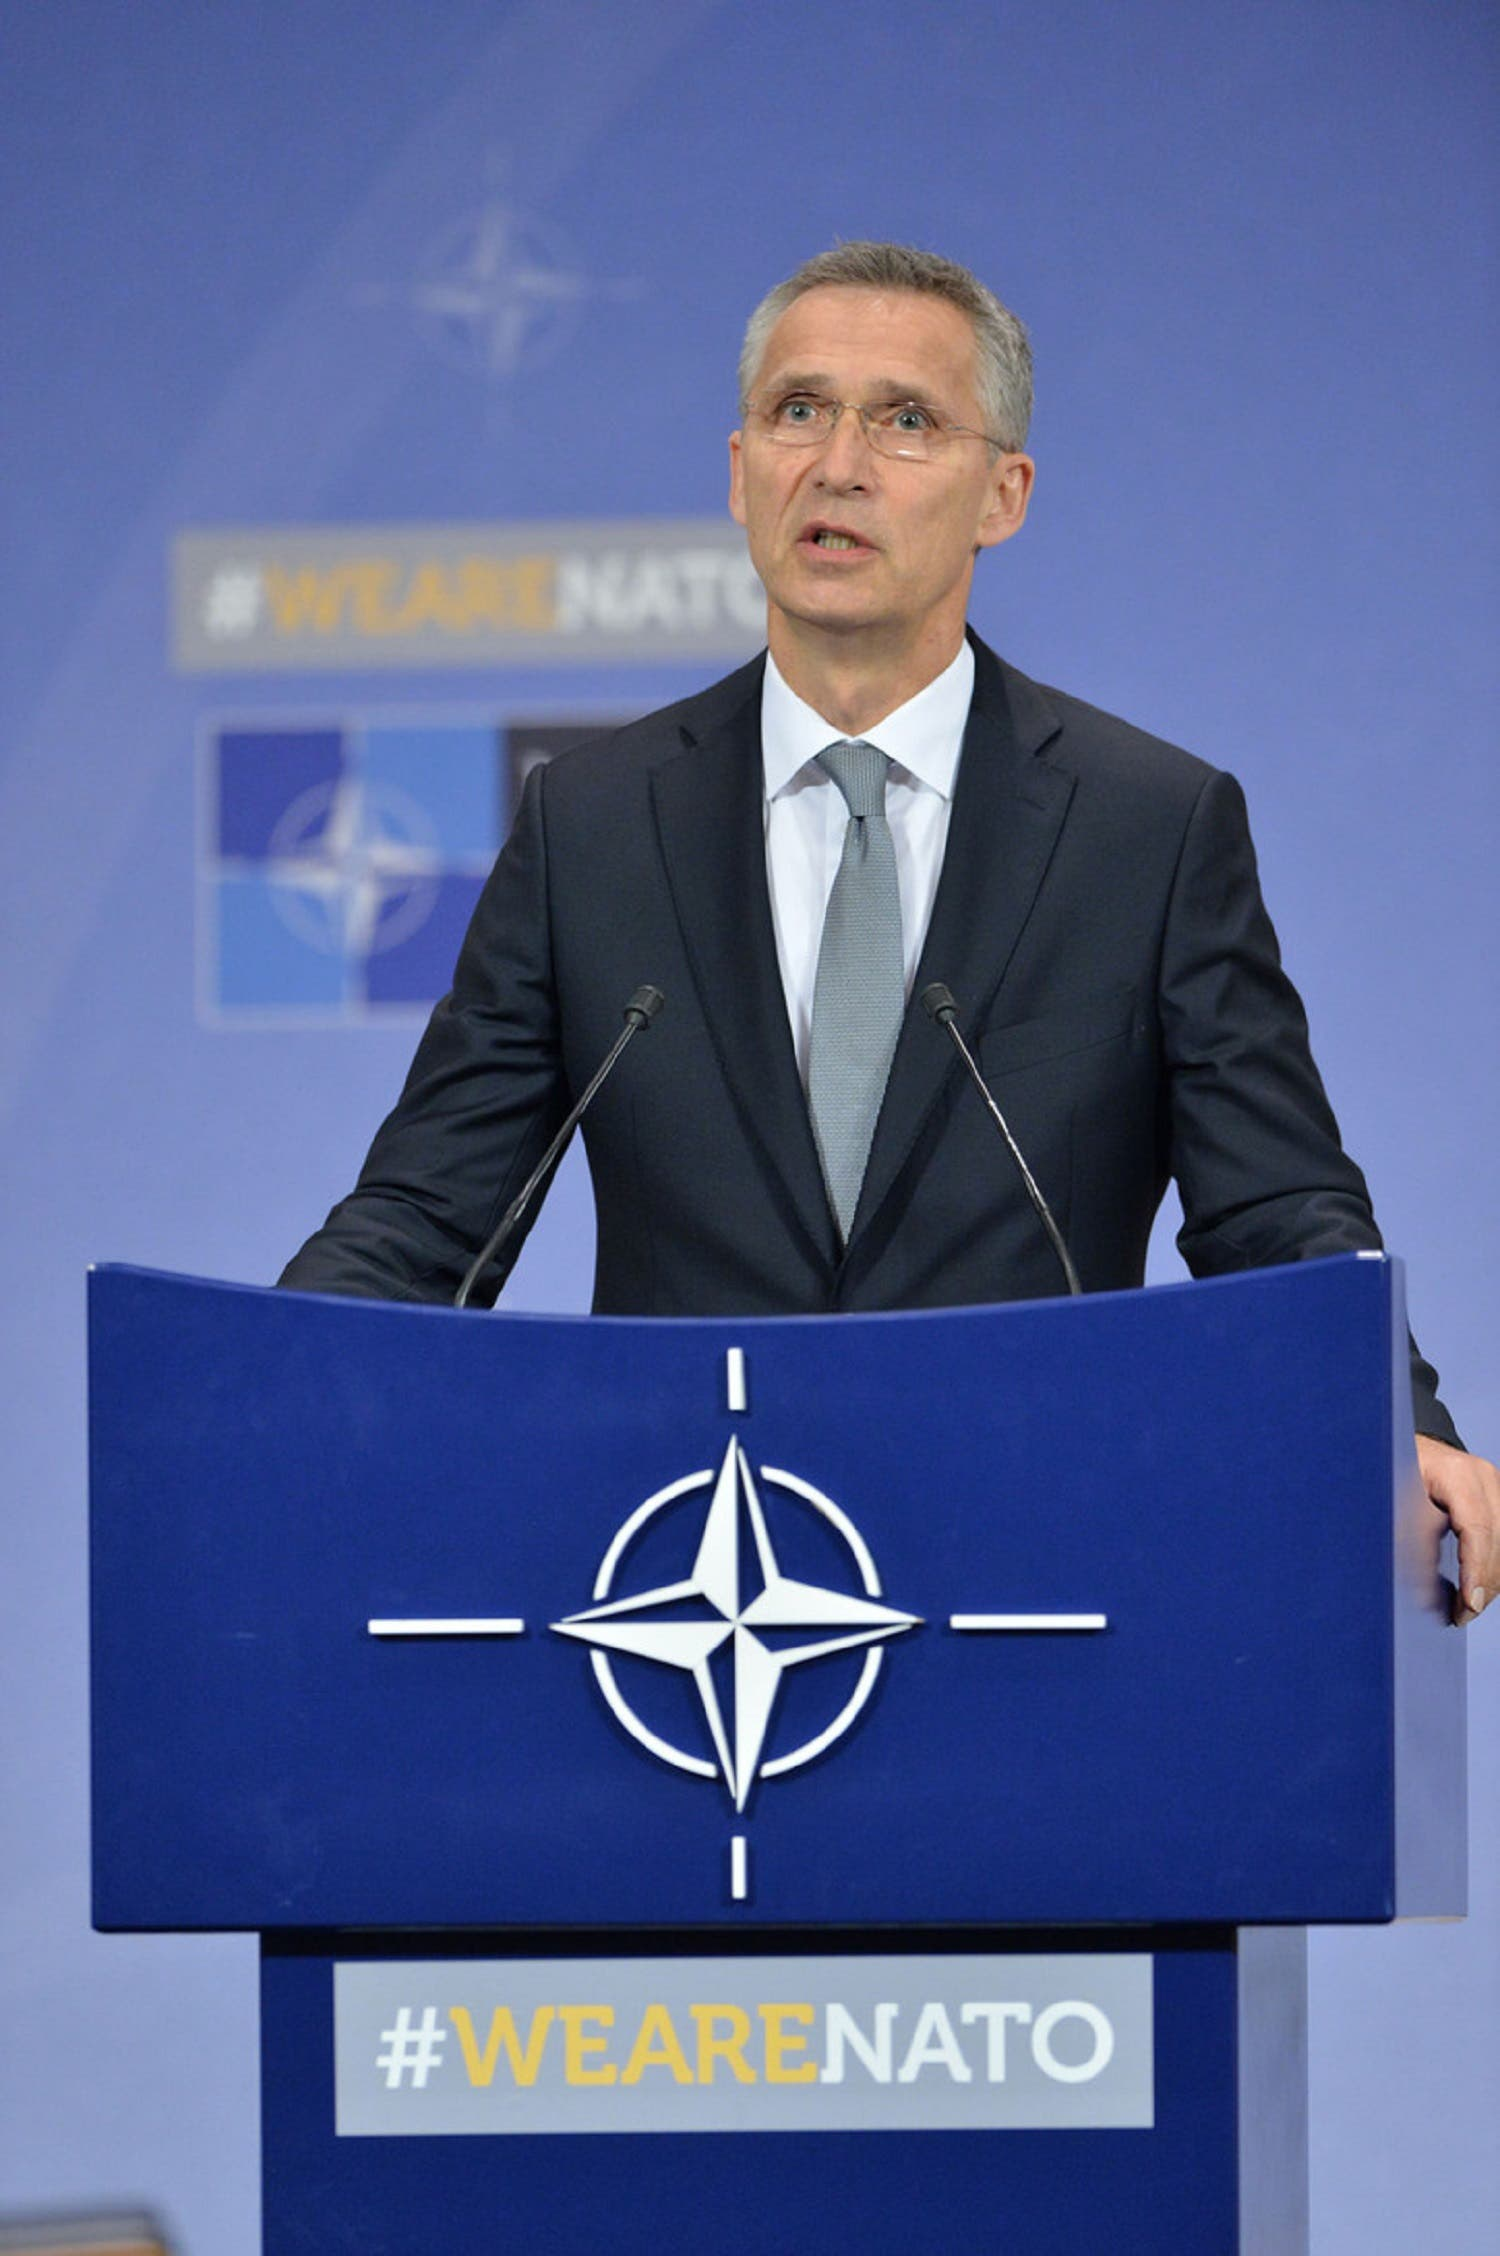 """Addressing possible threats from Russia, NATO Secretary-General Jens Stoltenberg underlined that """"The Alliance stands untied in the face of any possible aggression"""". (Supplied)"""